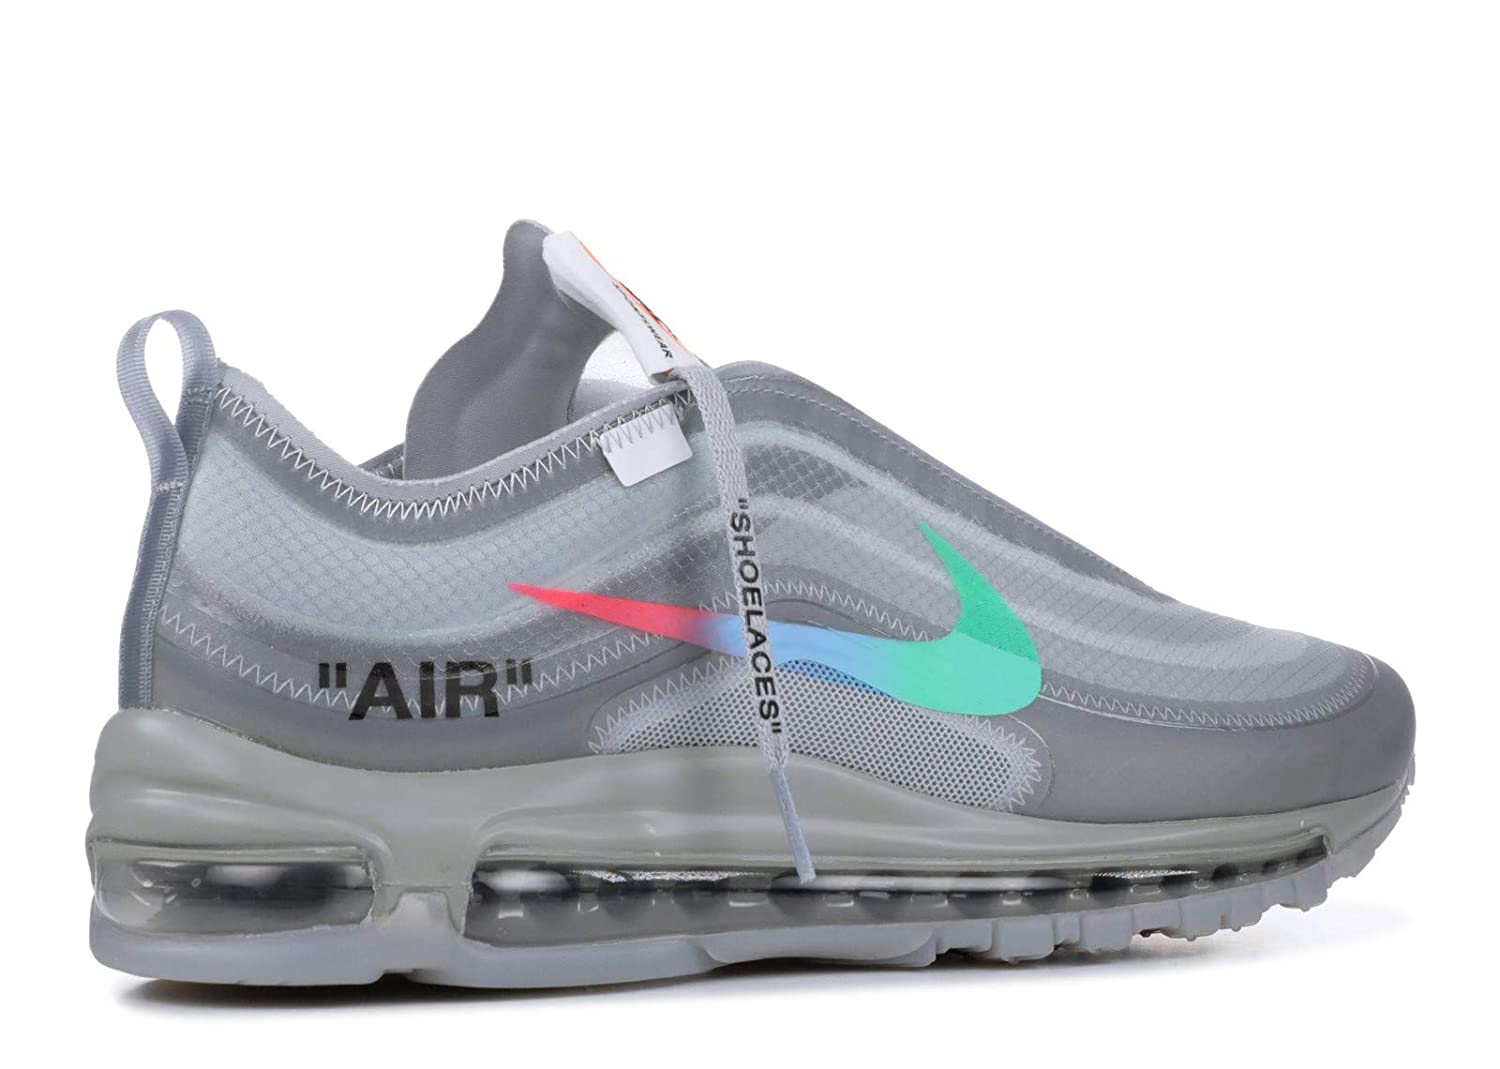 new style 92641 28a58 Amazon.com | Nike The 10 Air Max 97 Og 'Off White' - Size 4 ...